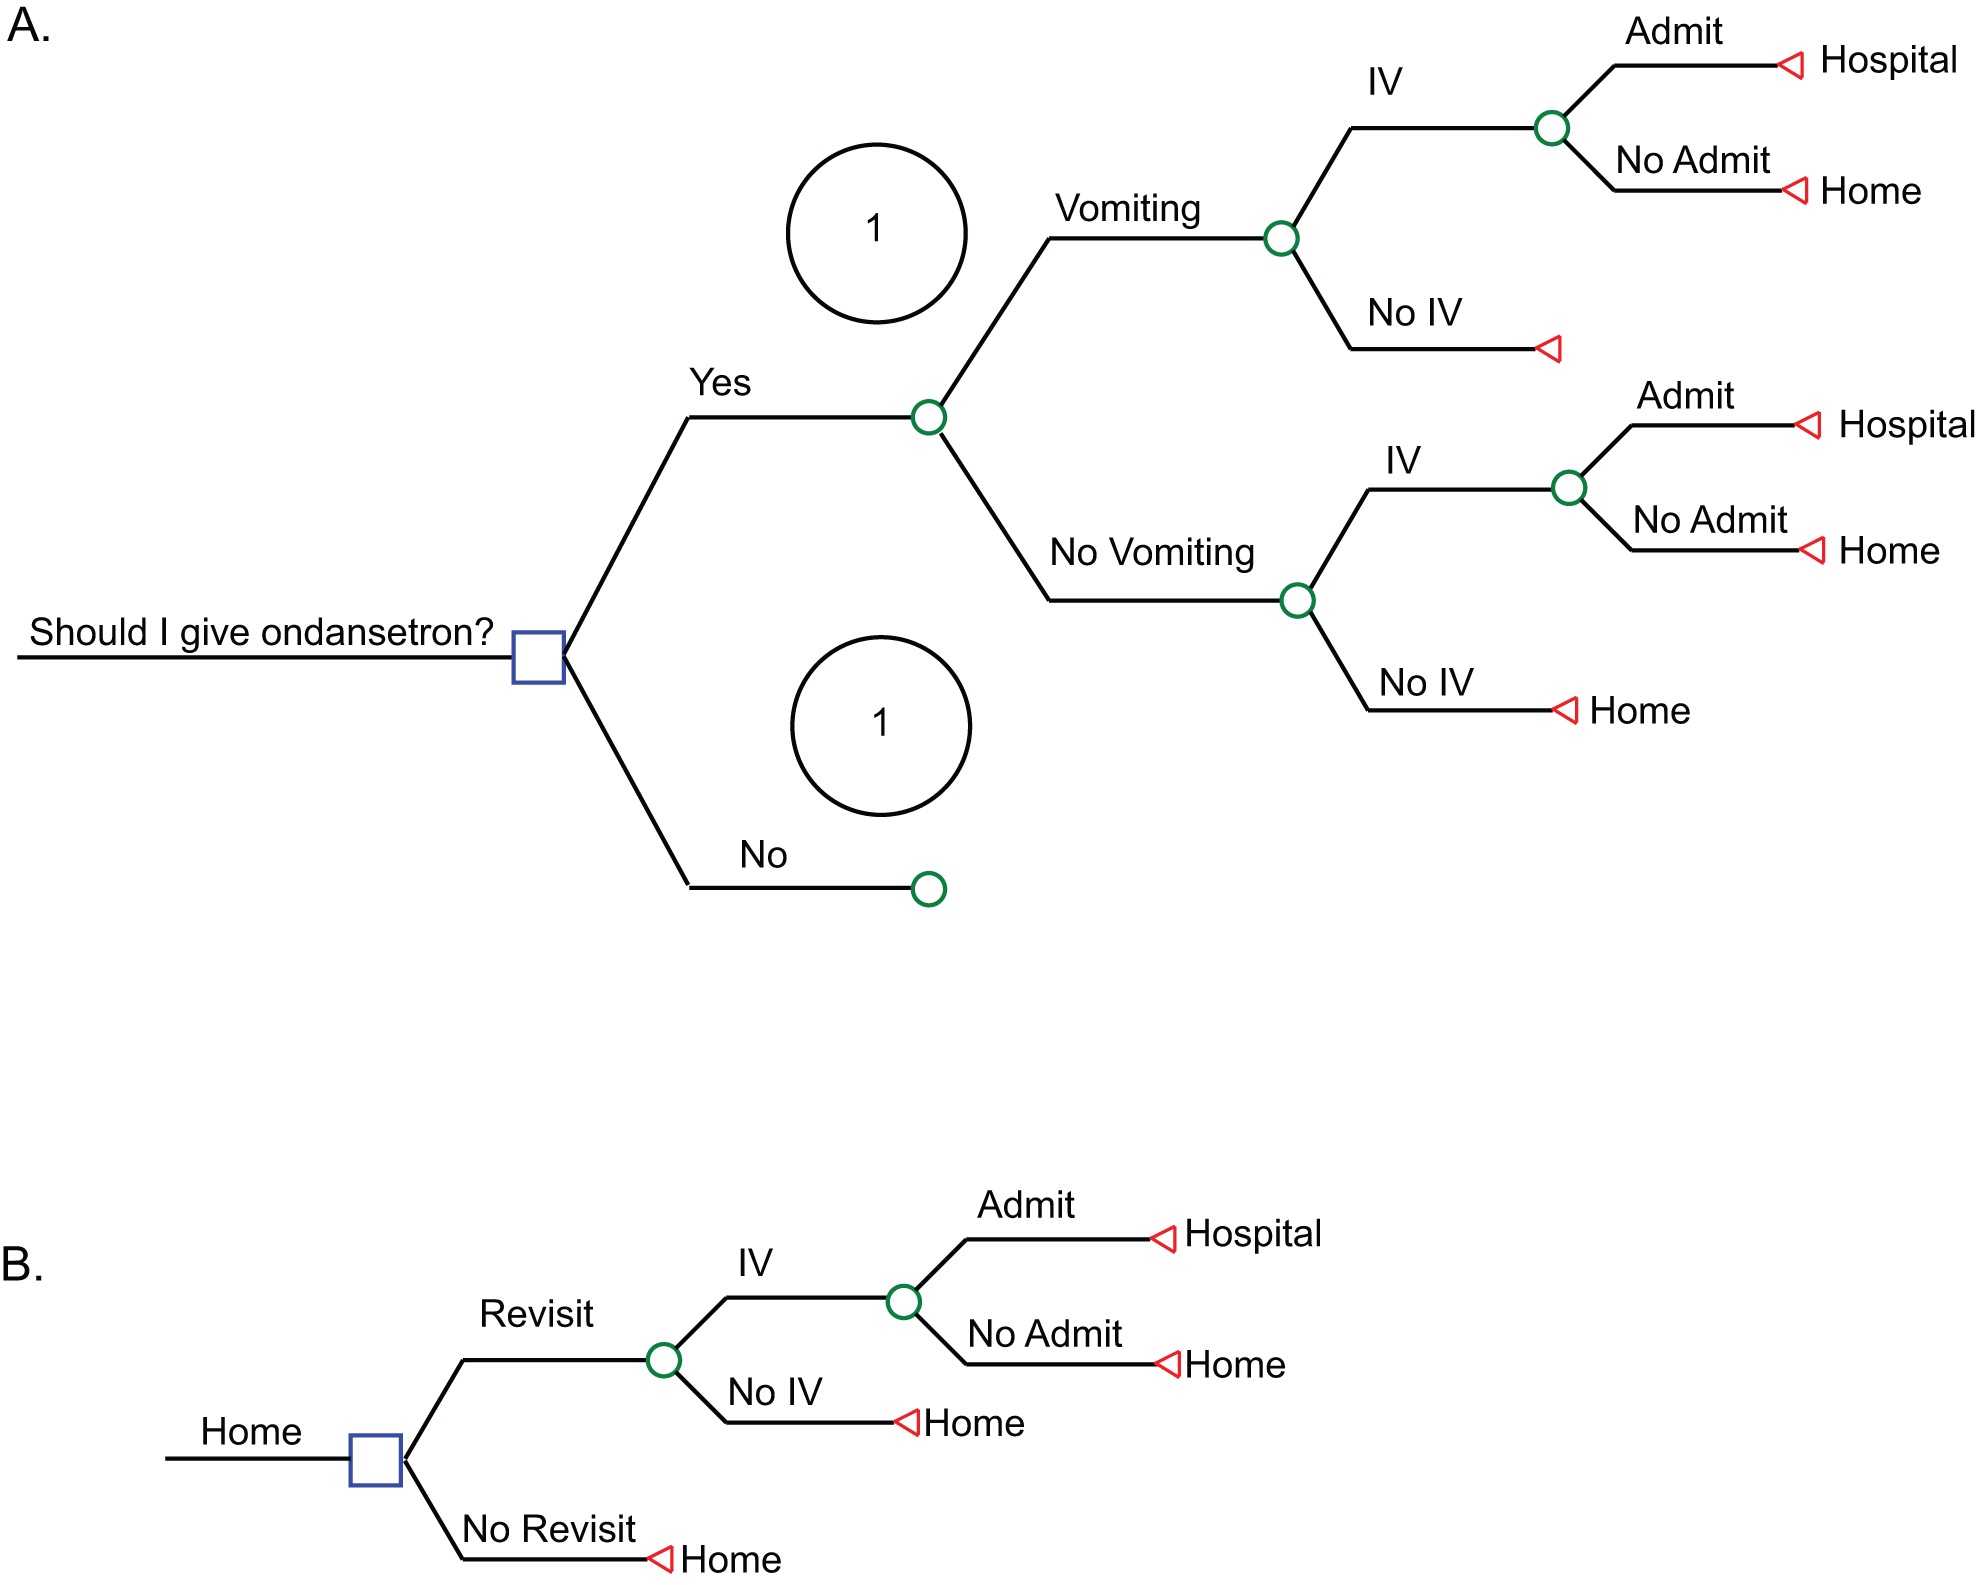 Tree structure used in the decision model.